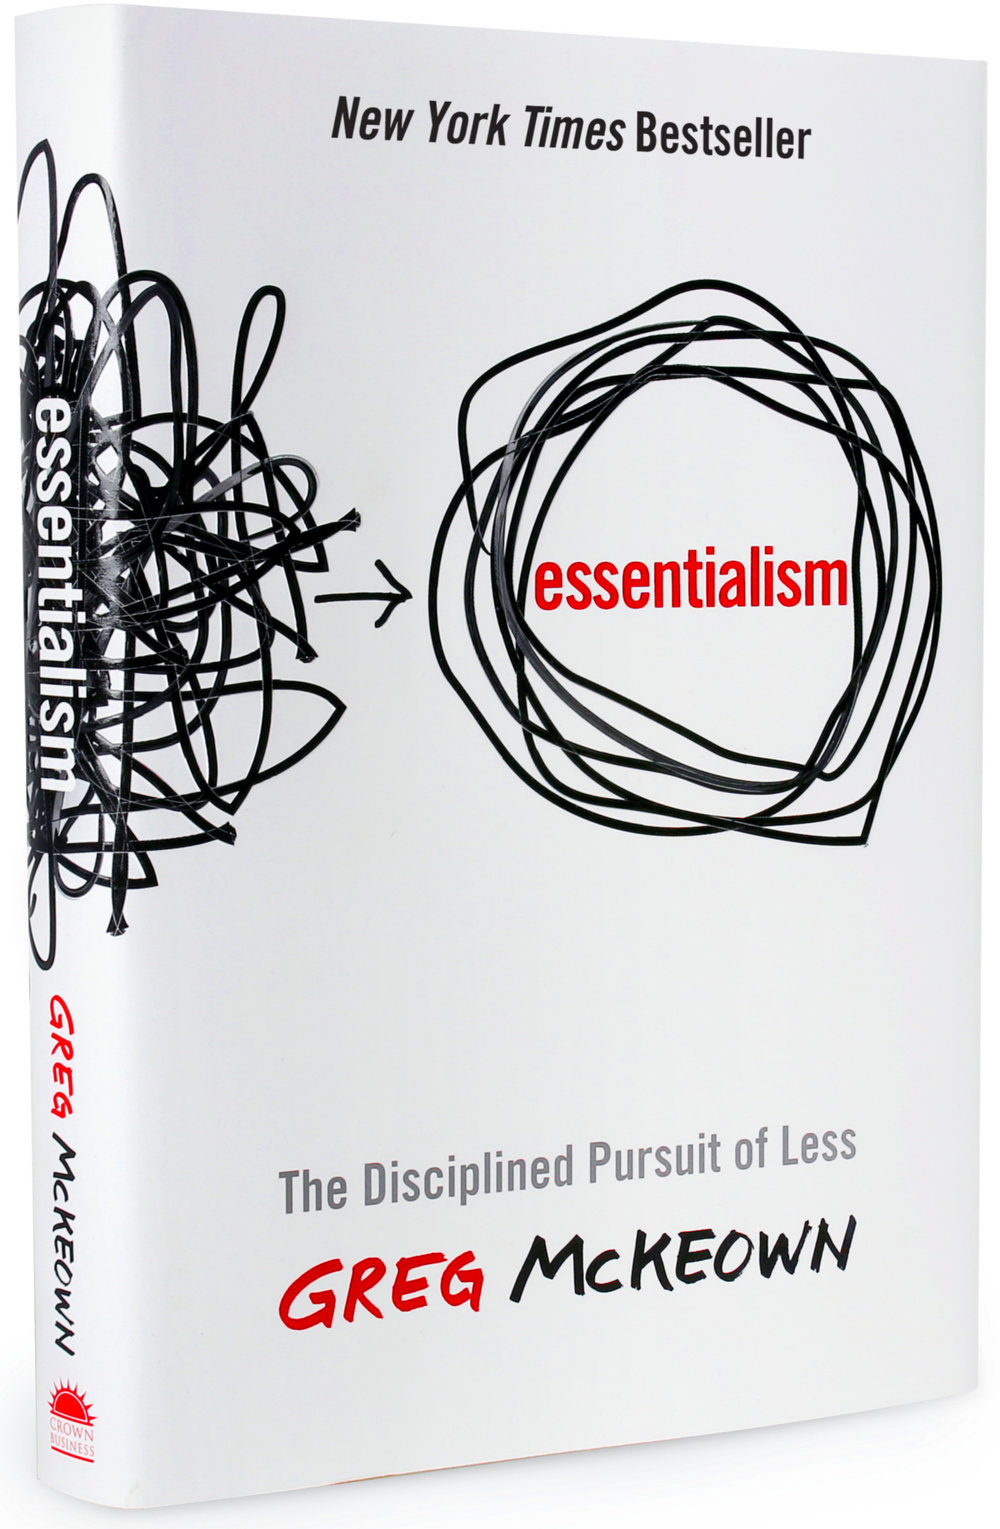 essentialismbook-WhiteBKGDnoshadow.jpg